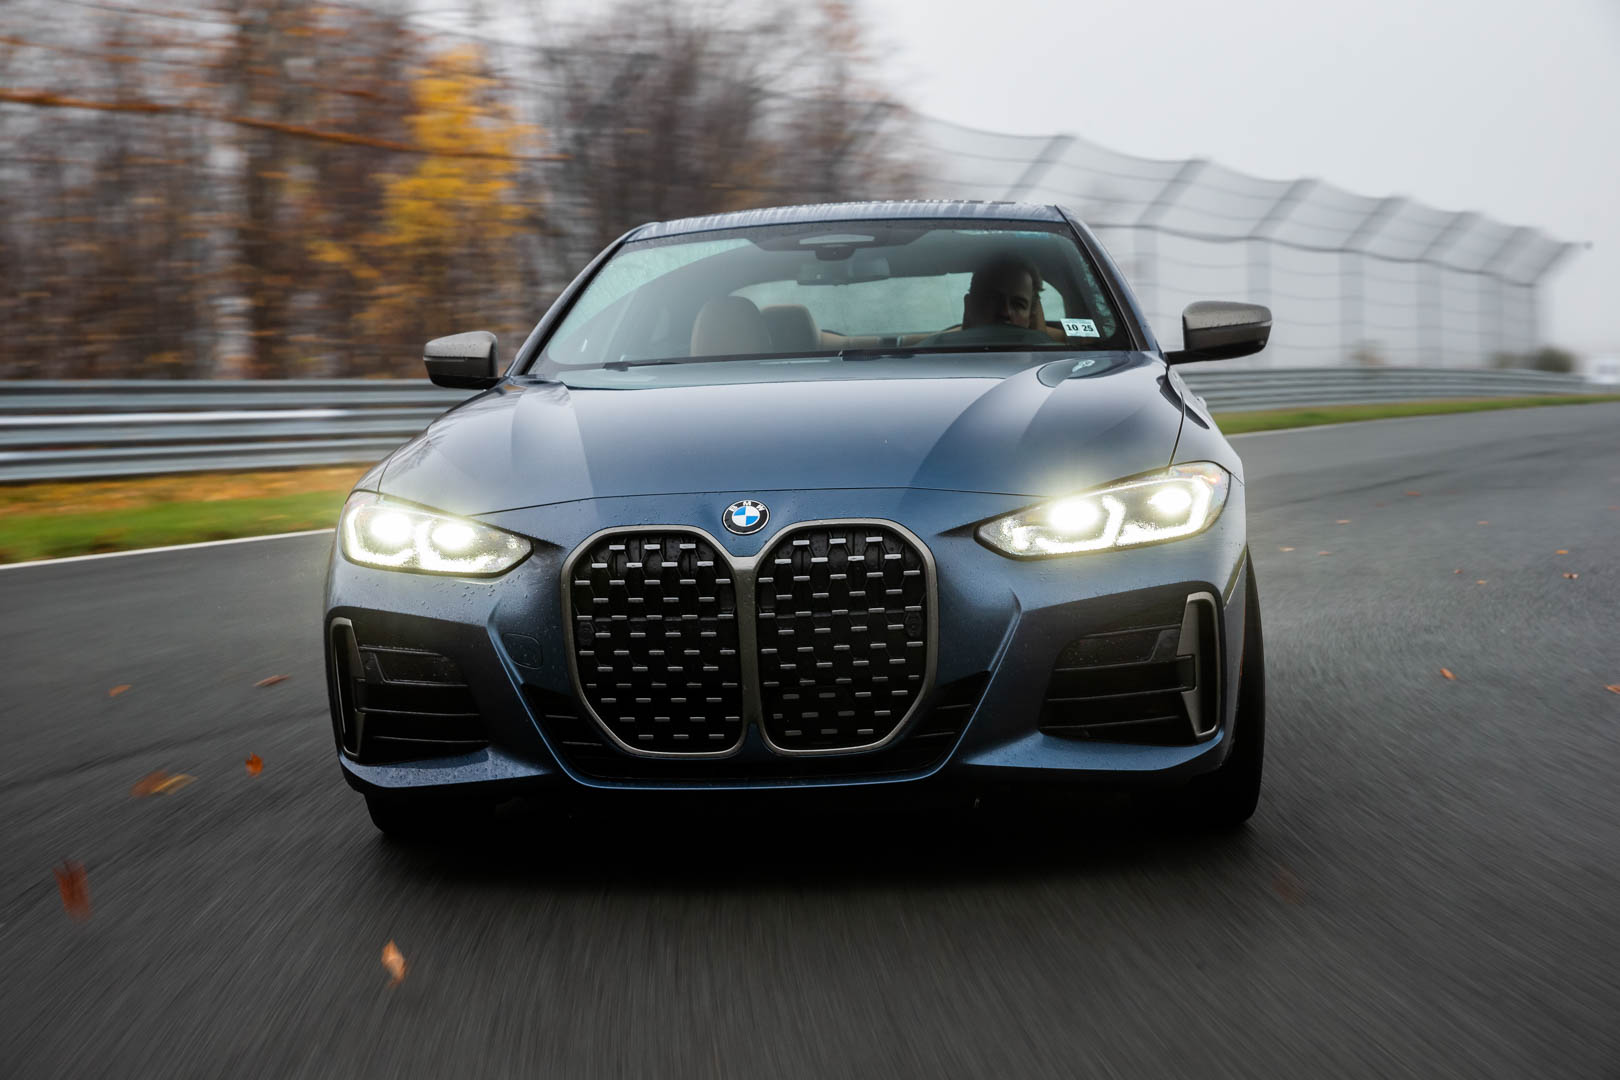 Video: Joe Achilles checks out the Driving Assistant on the BMW M440i